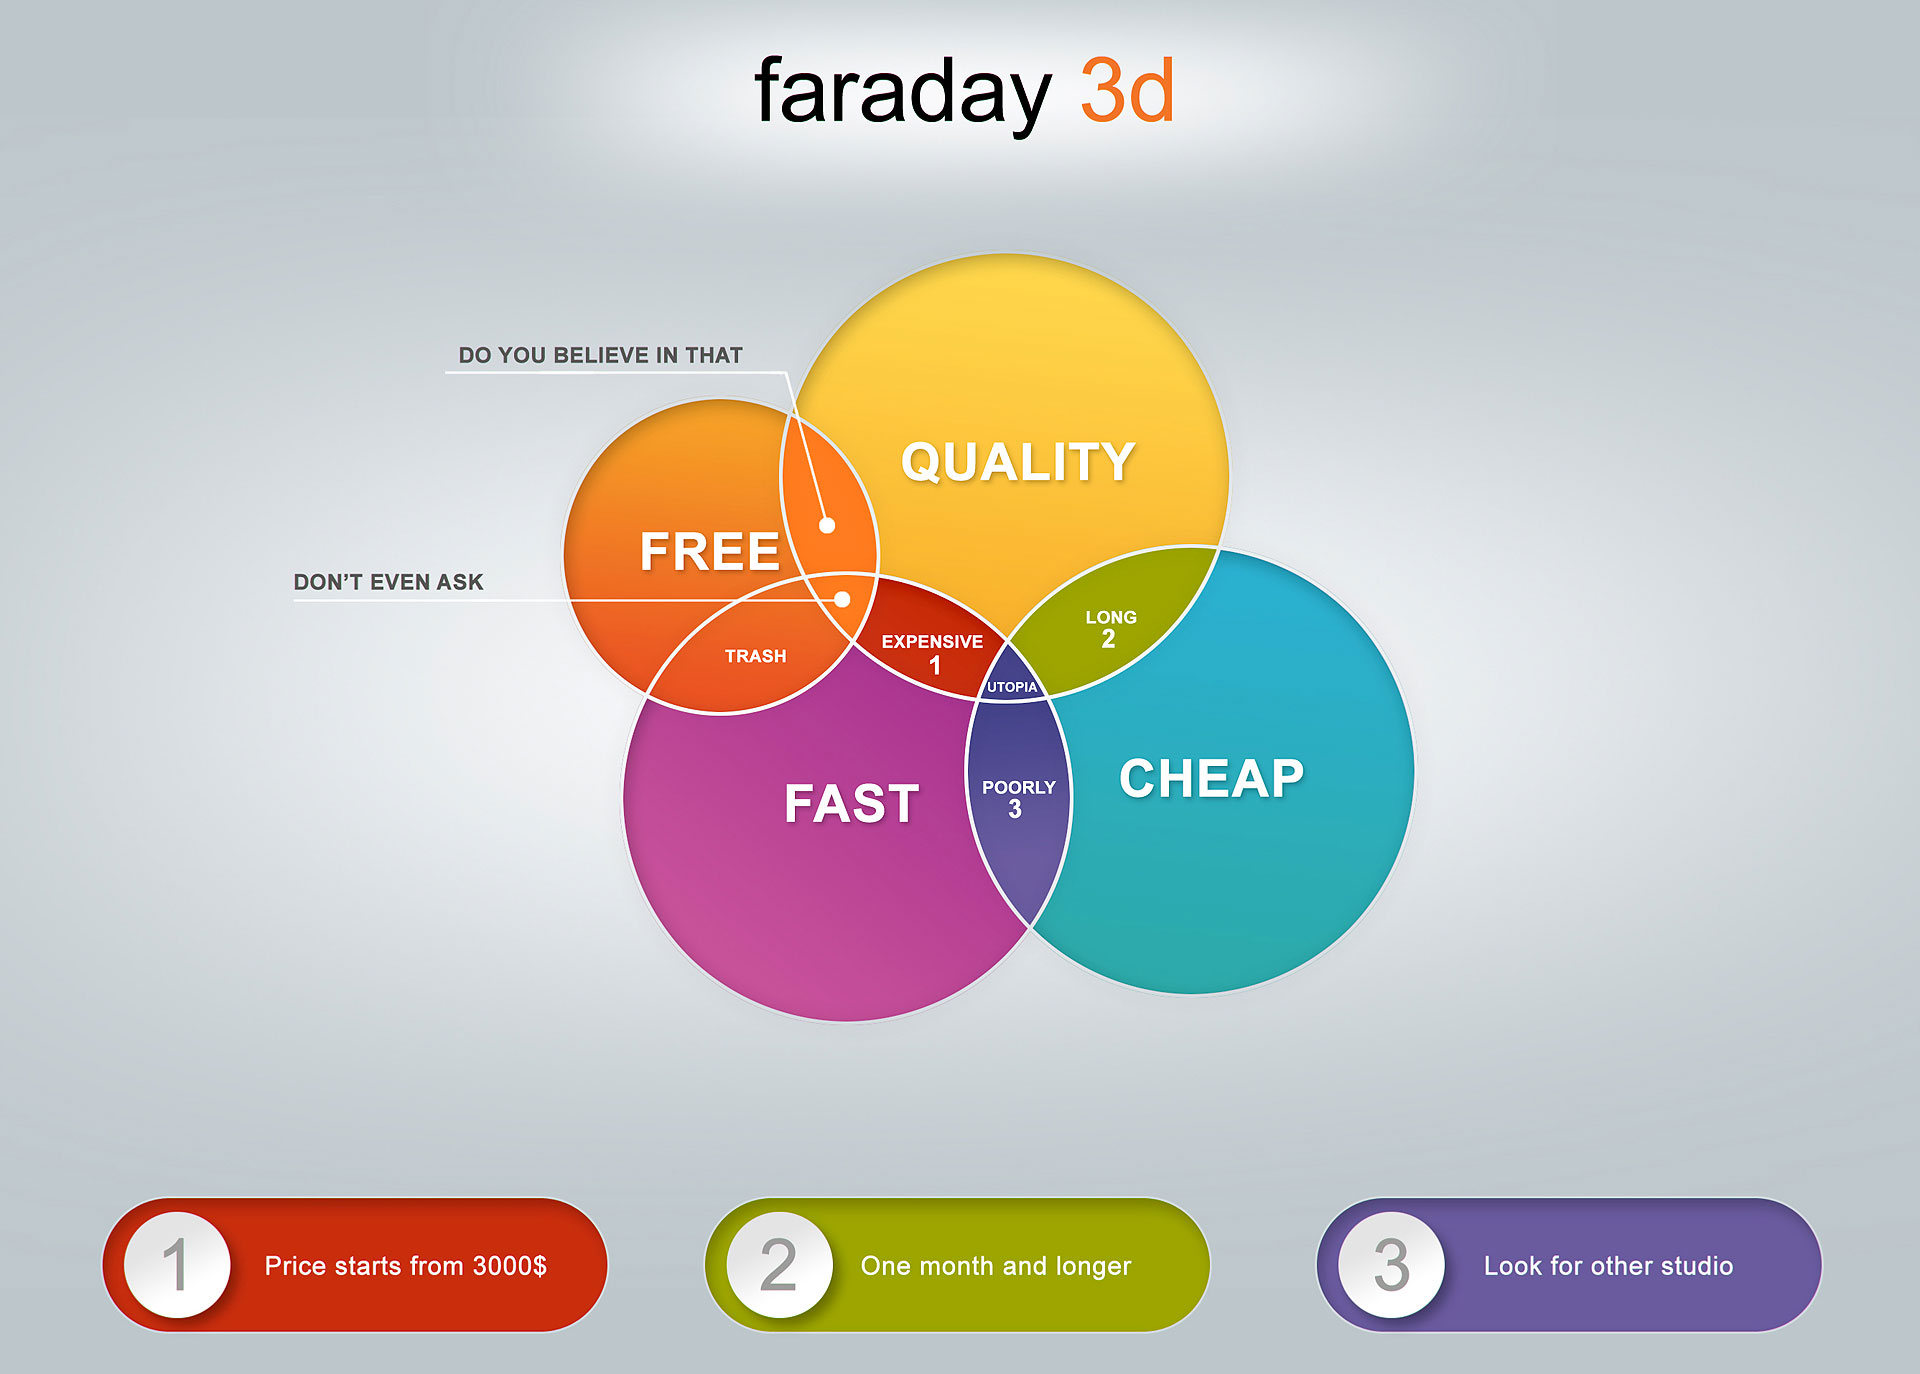 Faraday 3D rules